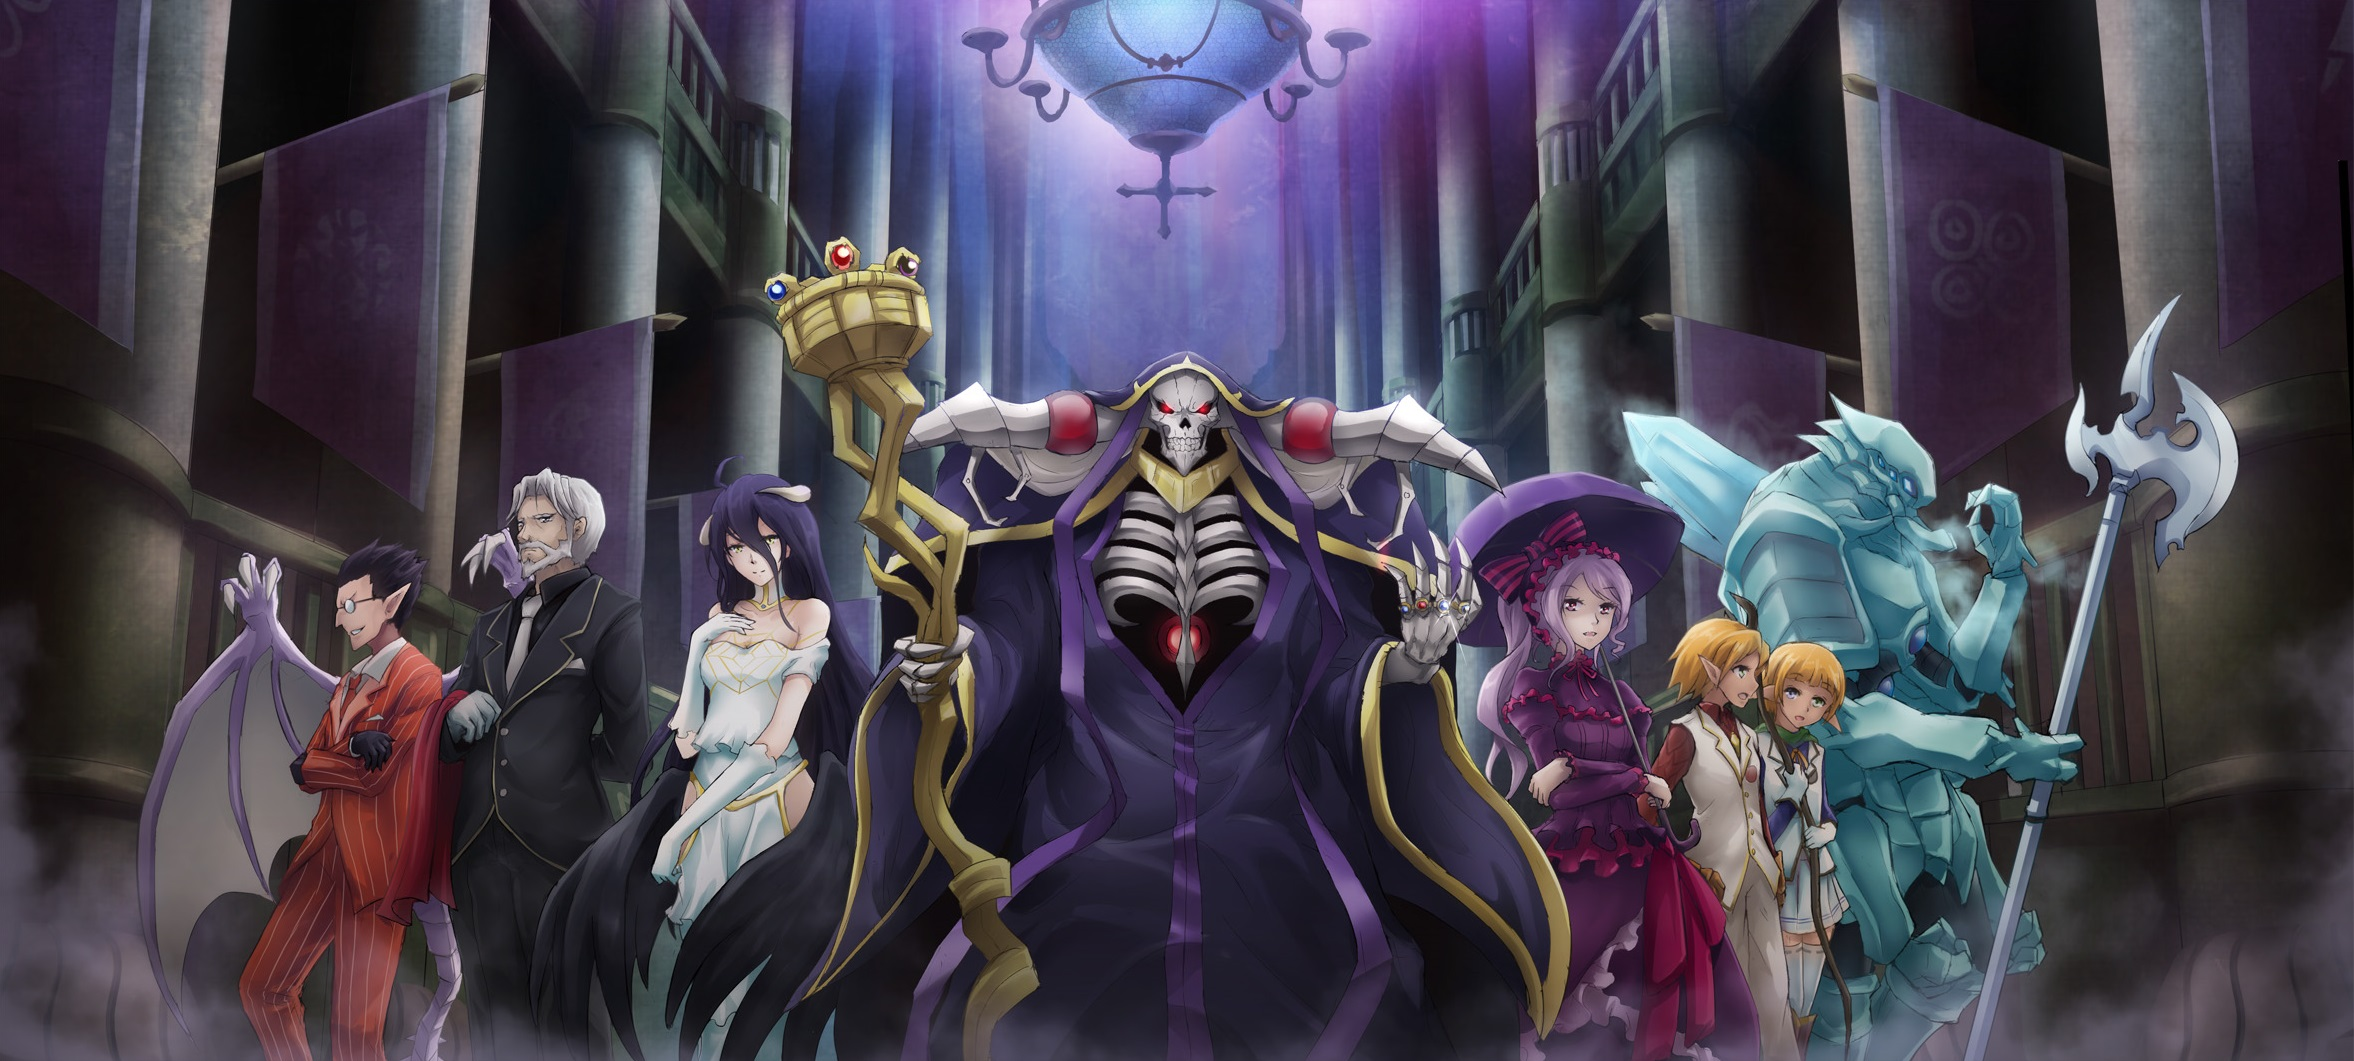 273 Overlord Hd Wallpapers Background Images Wallpaper Abyss